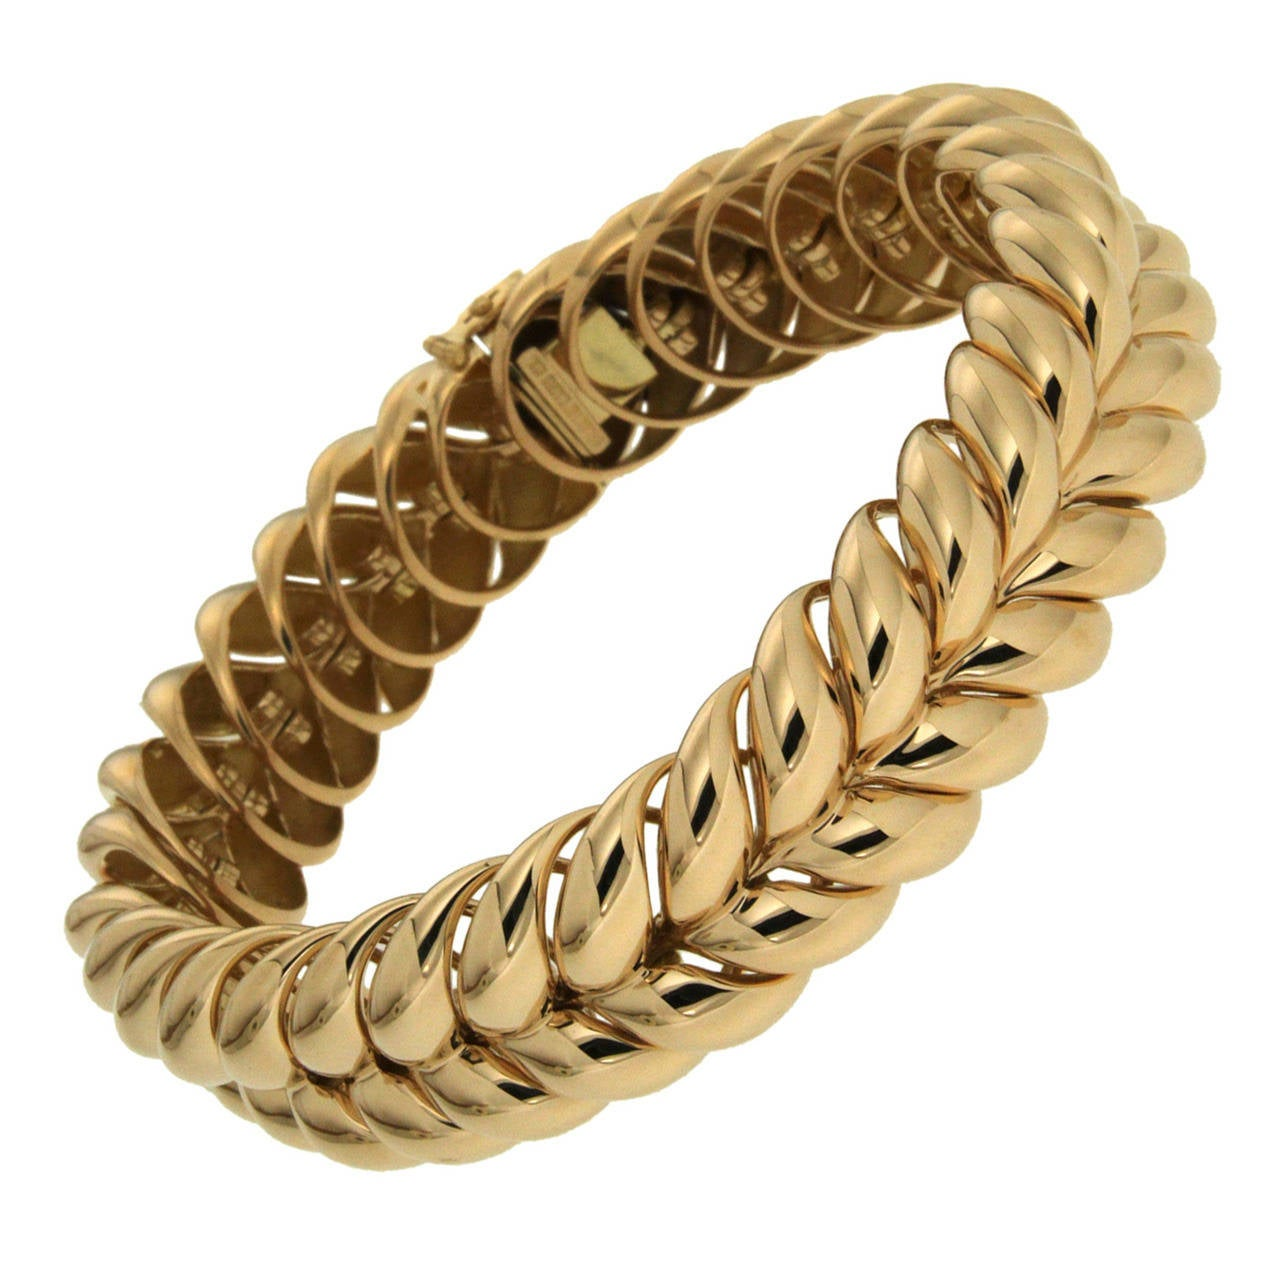 johnlewis john strand rope online lewis bracelet ibb at hollow com pdp buyibb rsp gold main